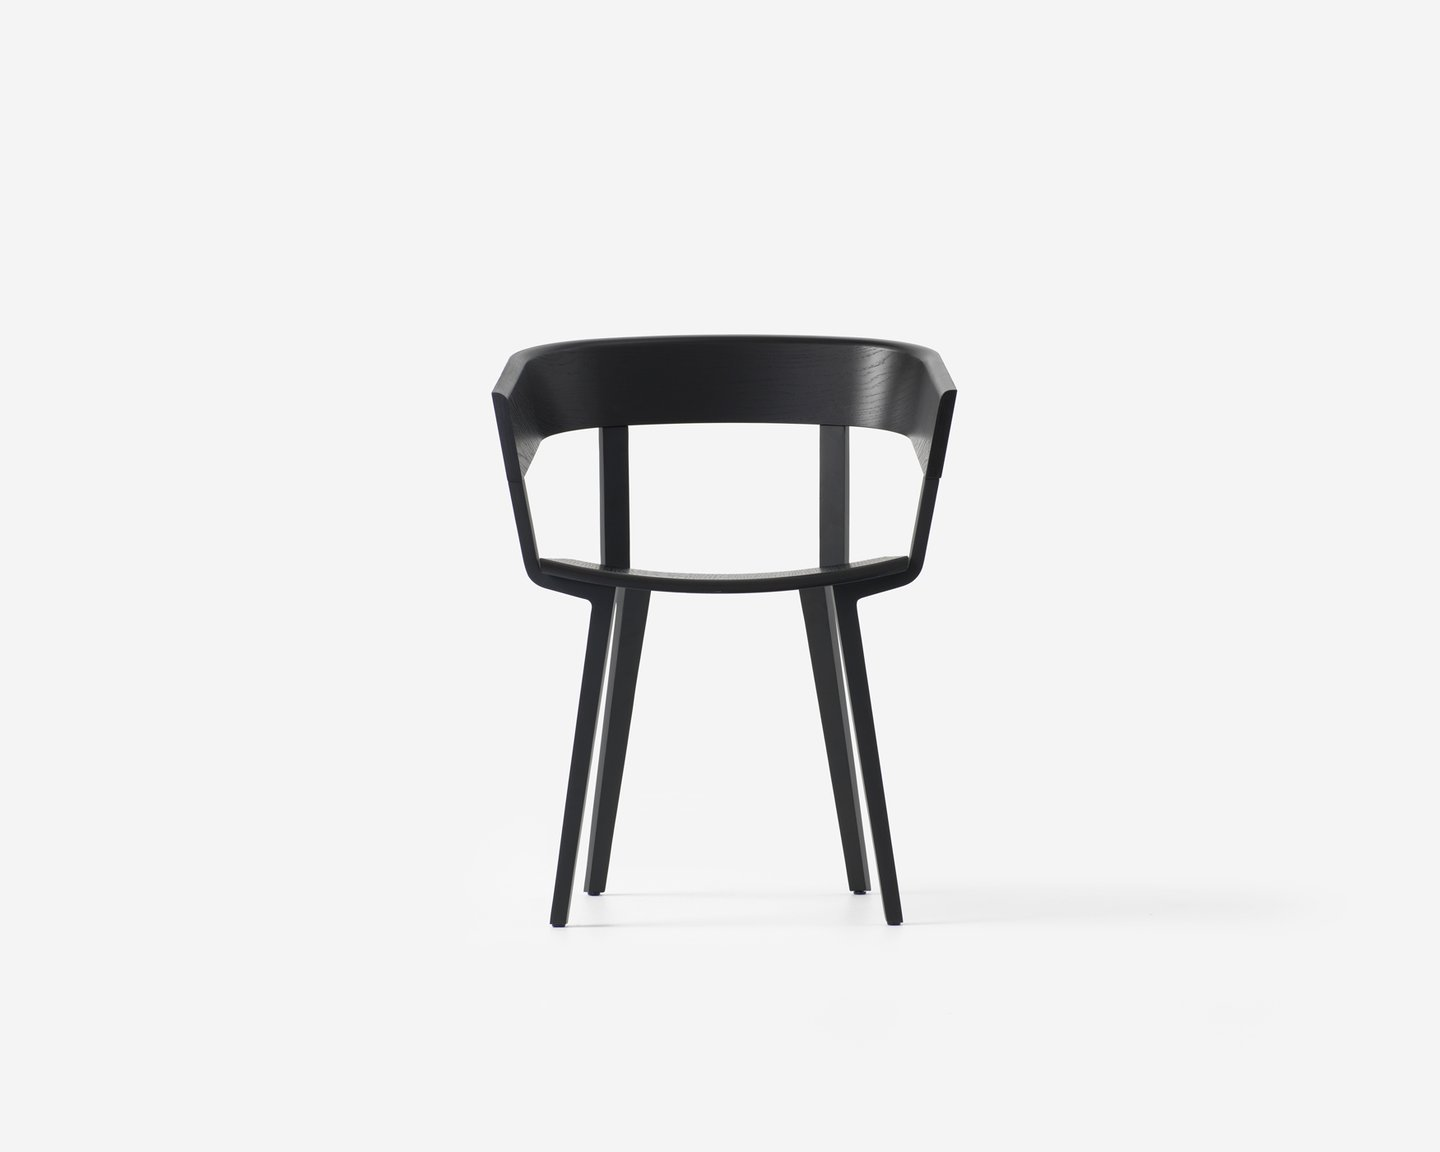 Image: uploads/2017_03/Resident-Odin-Chair-by-Jamie-Mclellan-2.jpg